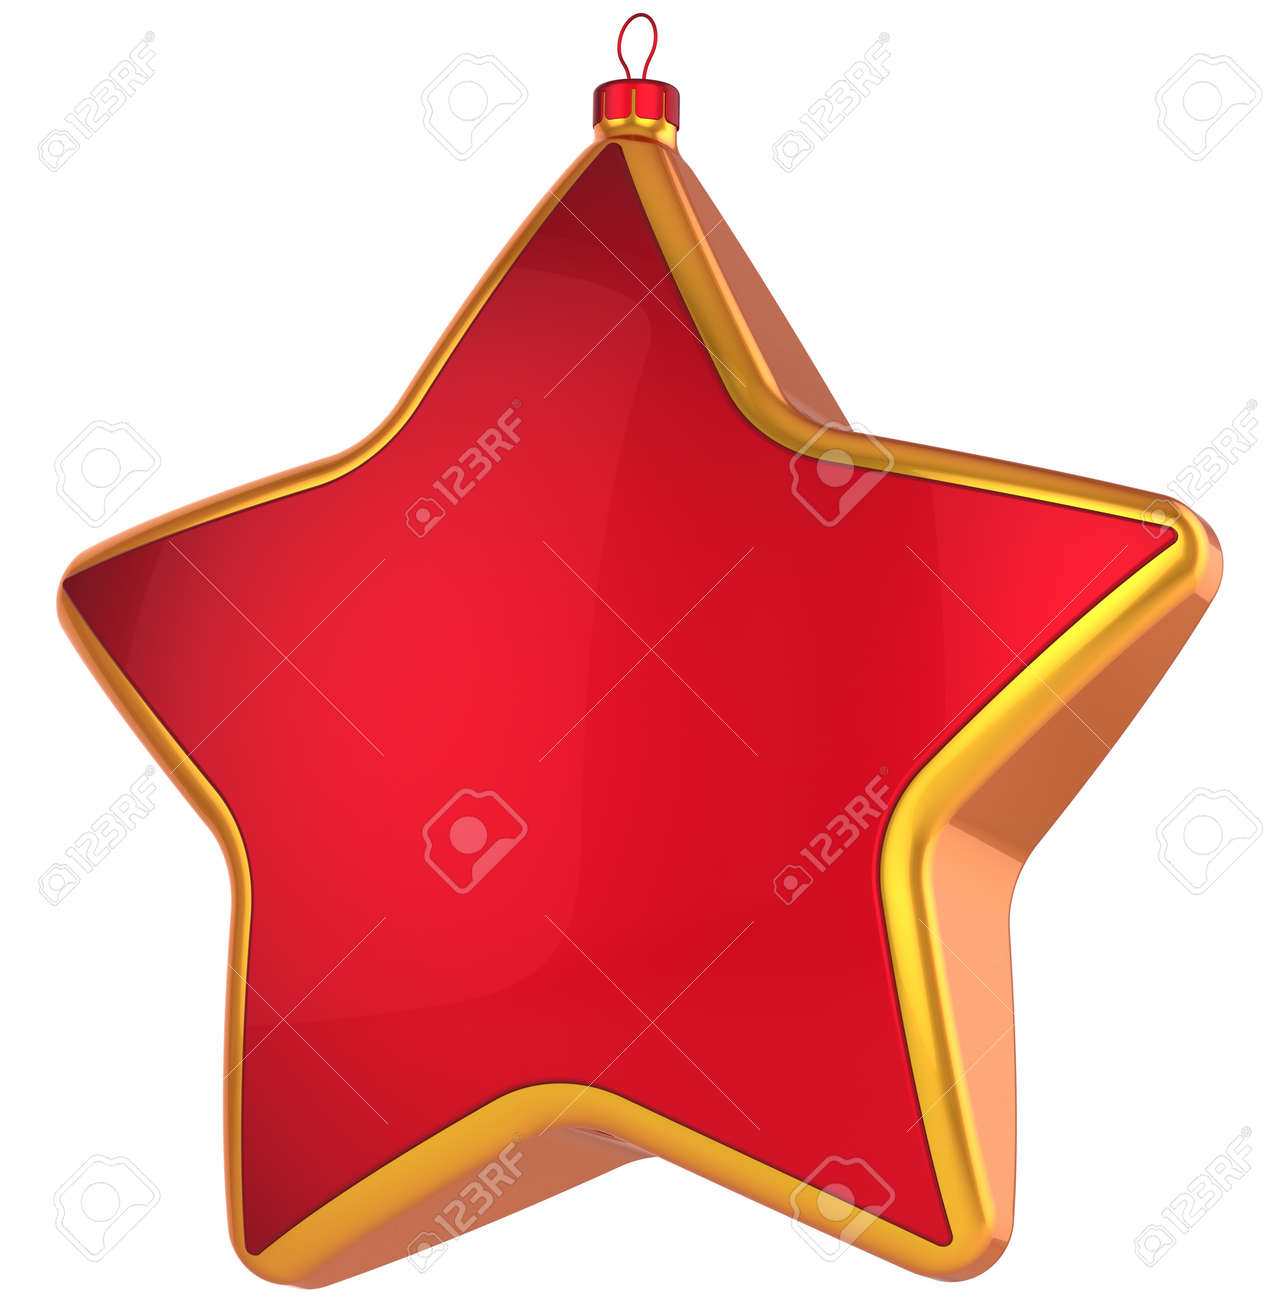 red christmas star shape bauble with golden border modern shiny xmas new year decoration